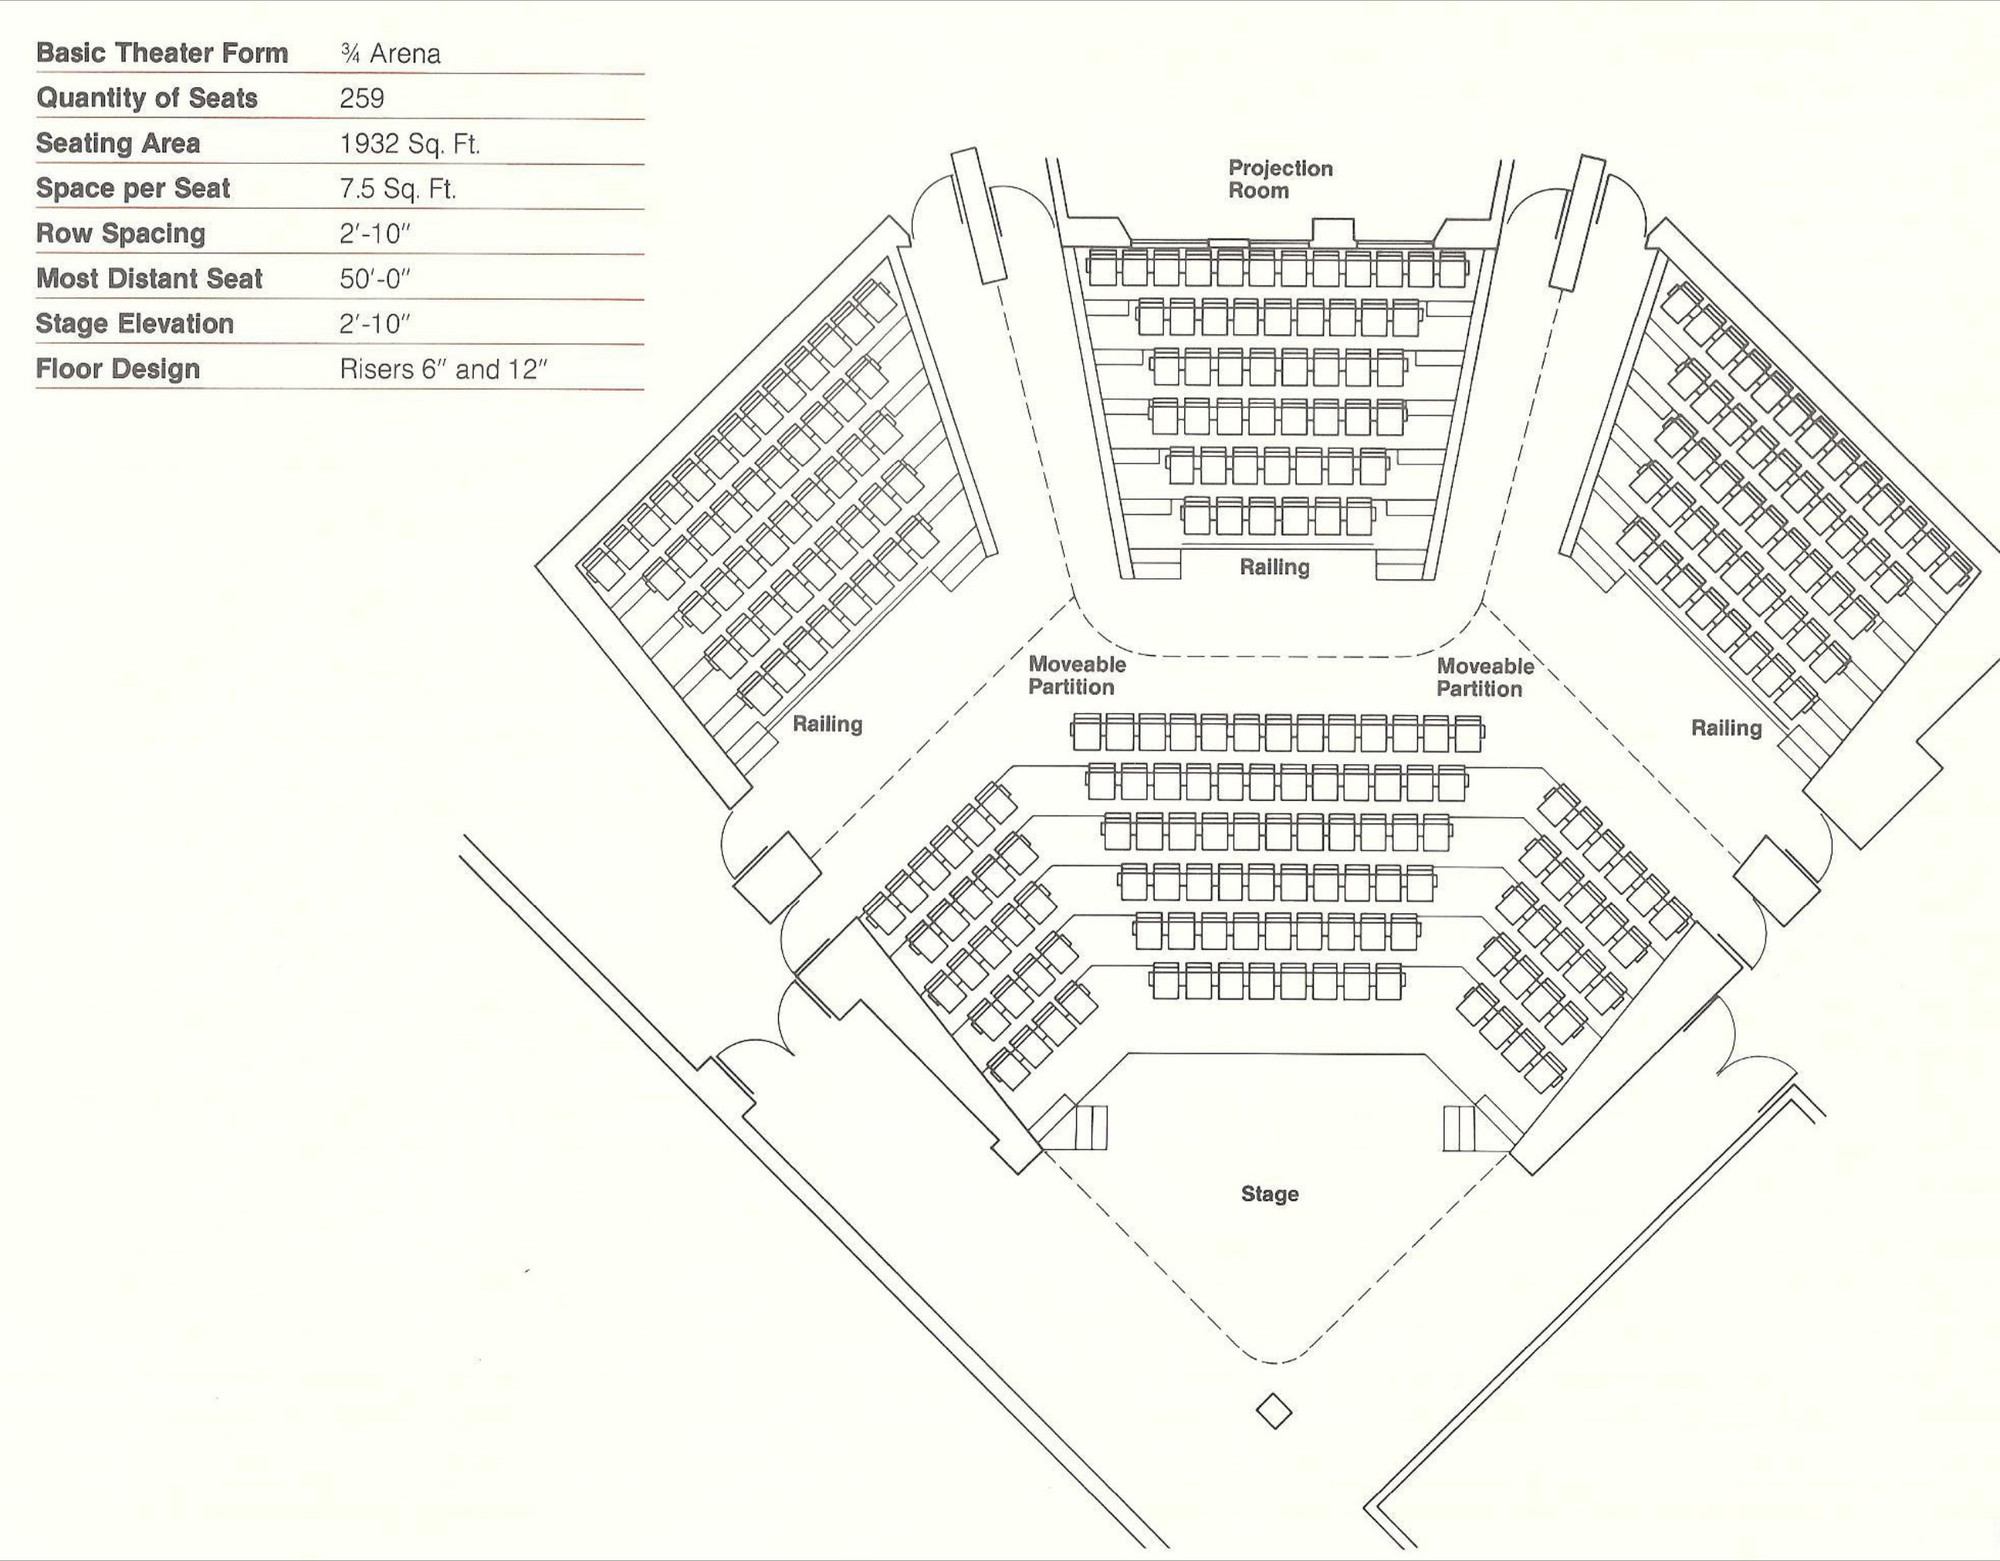 21 Seating Layout Examples TSI 21?1479293831 how to design theater seating, shown through 21 detailed example